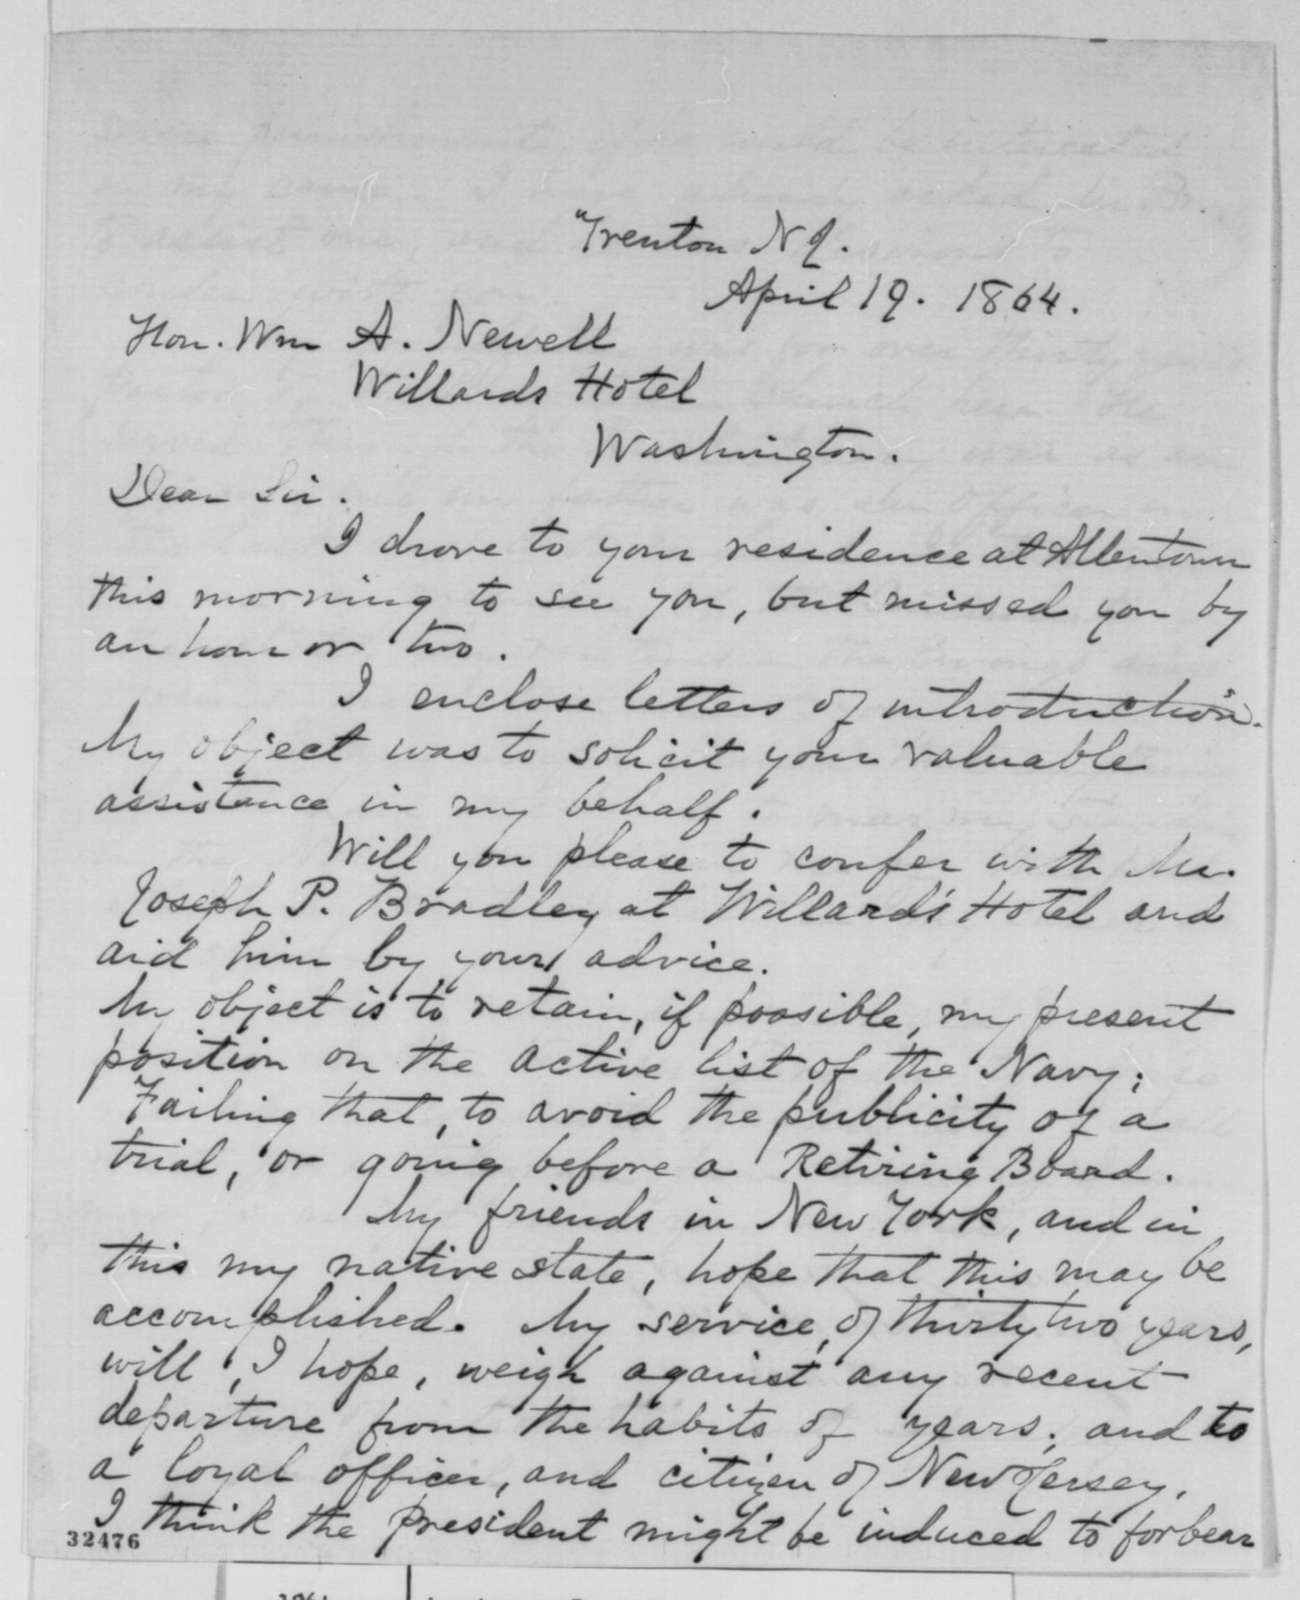 James F. Armstrong to William A. Newell, Tuesday, April 19, 1864  (Wants to be restored to rank in the navy)